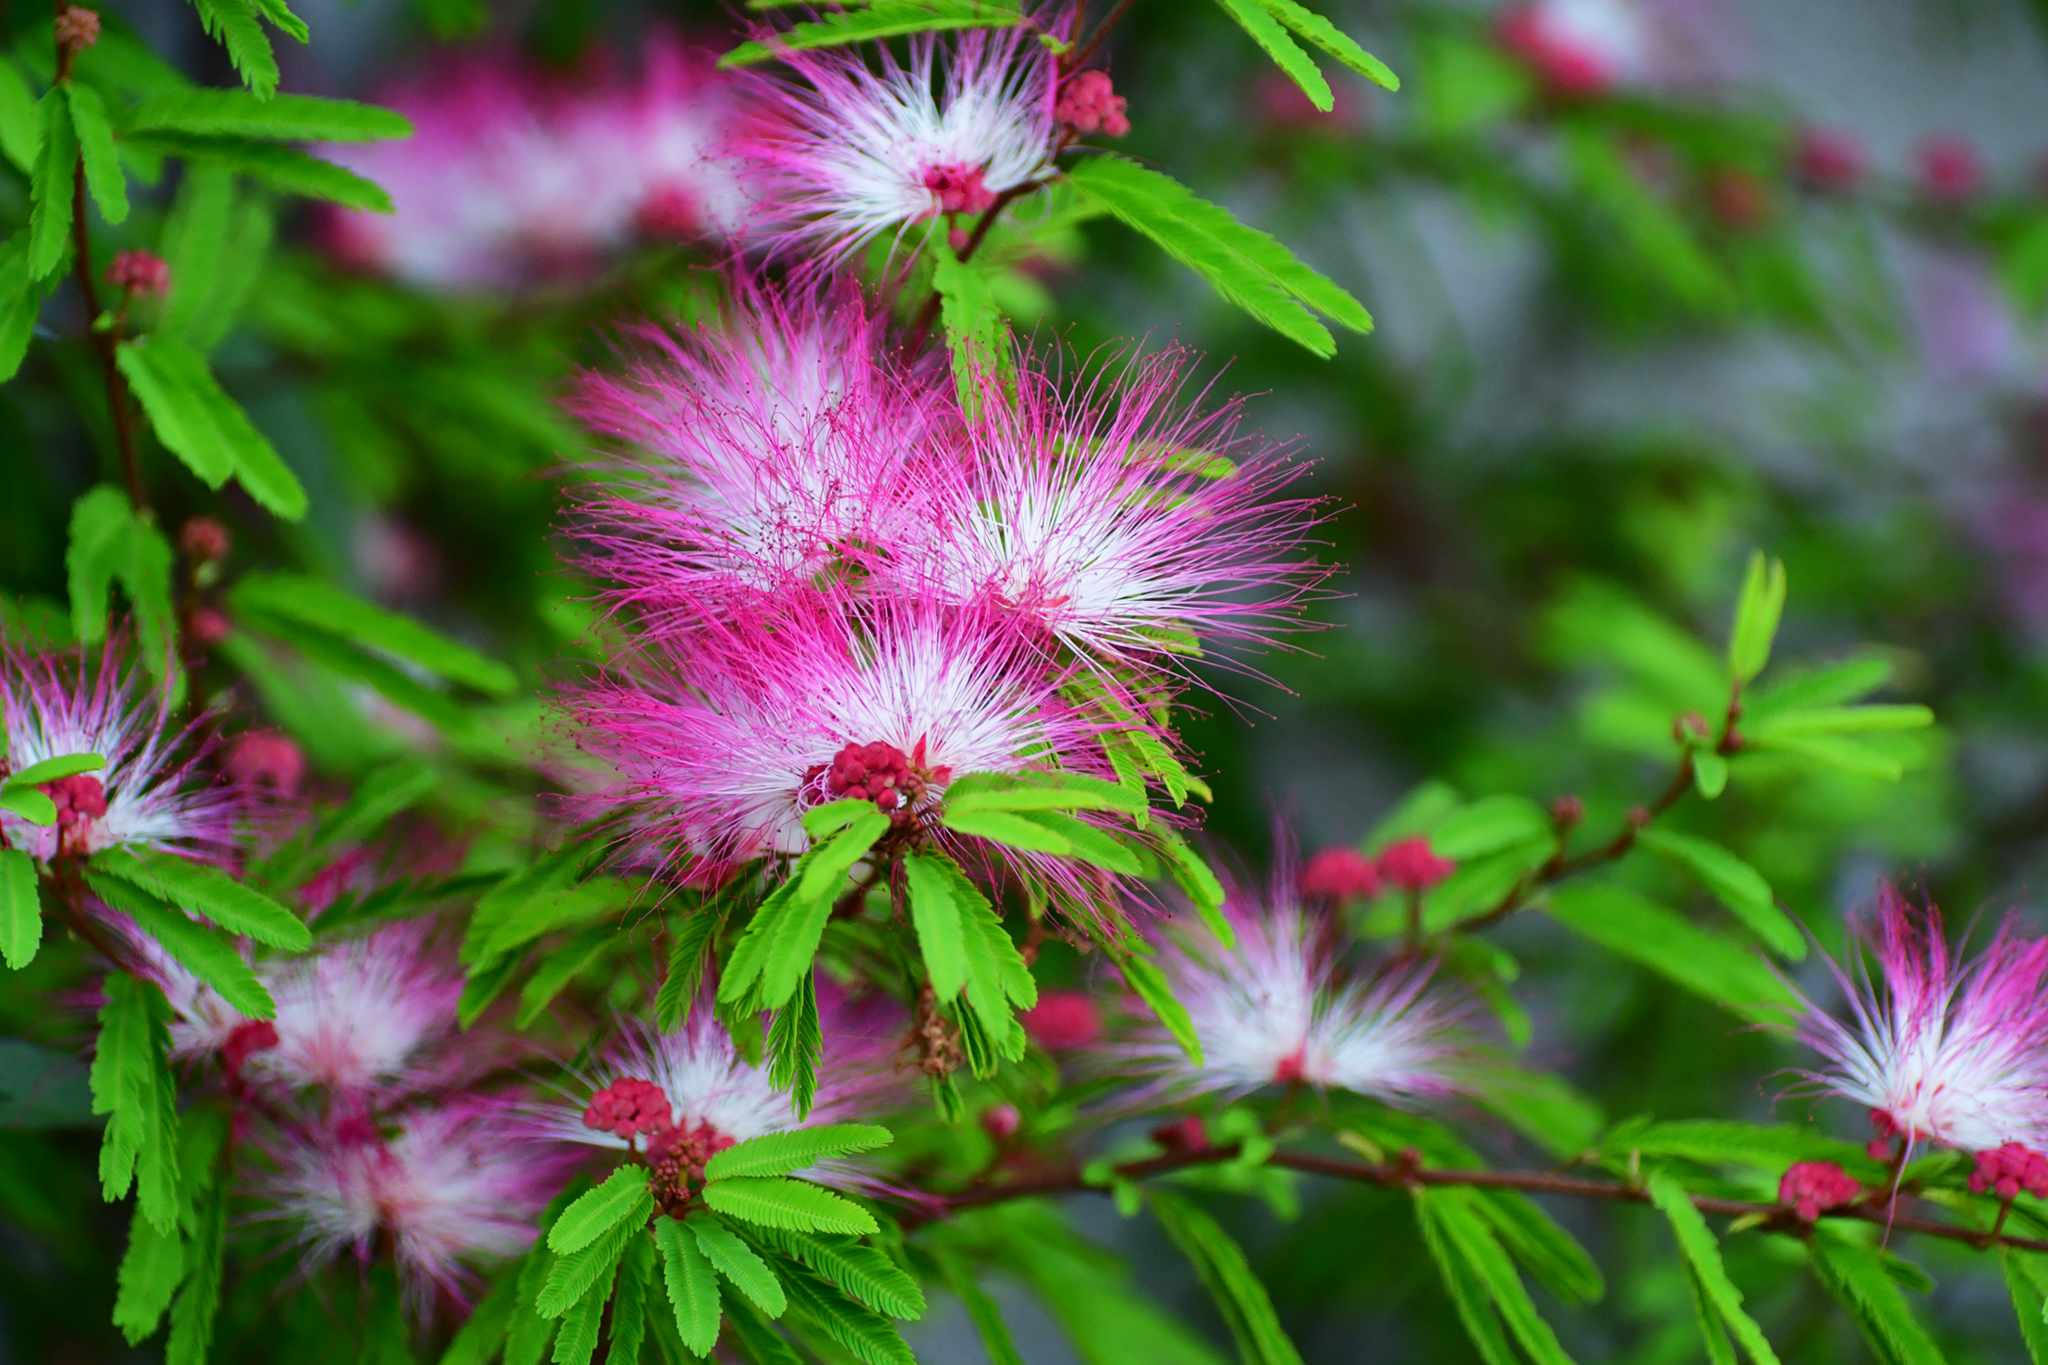 Flowers of Persian silk tree, Albizia julibrissin. Photo: Getty Images.